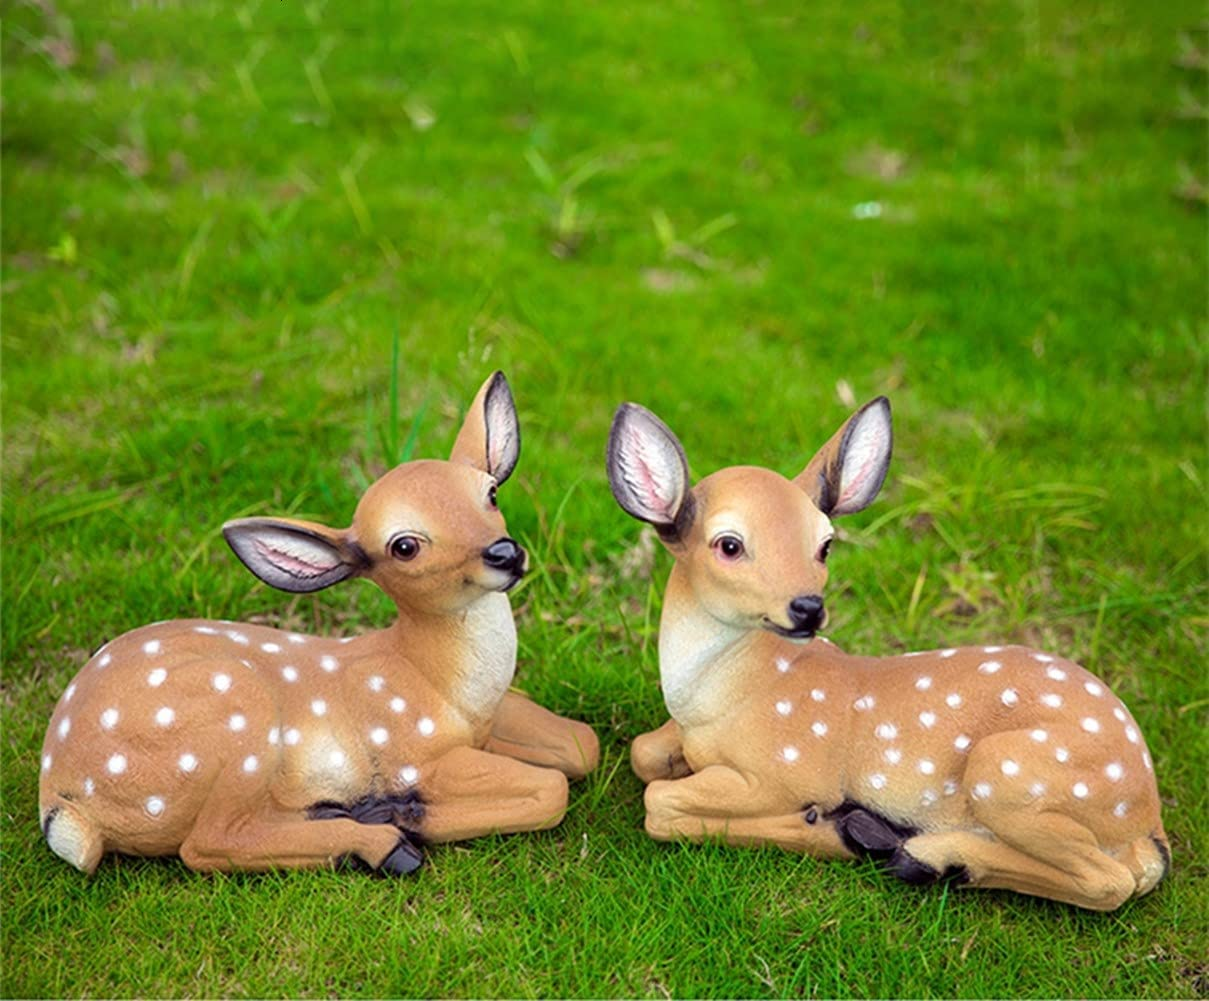 Sika Deer Garden Statues Outdoor Decor Animal Resin Crafts for Garden Decor Patio Lawn Yard Decor Home Decorations (2pcs Small Lying Deer)